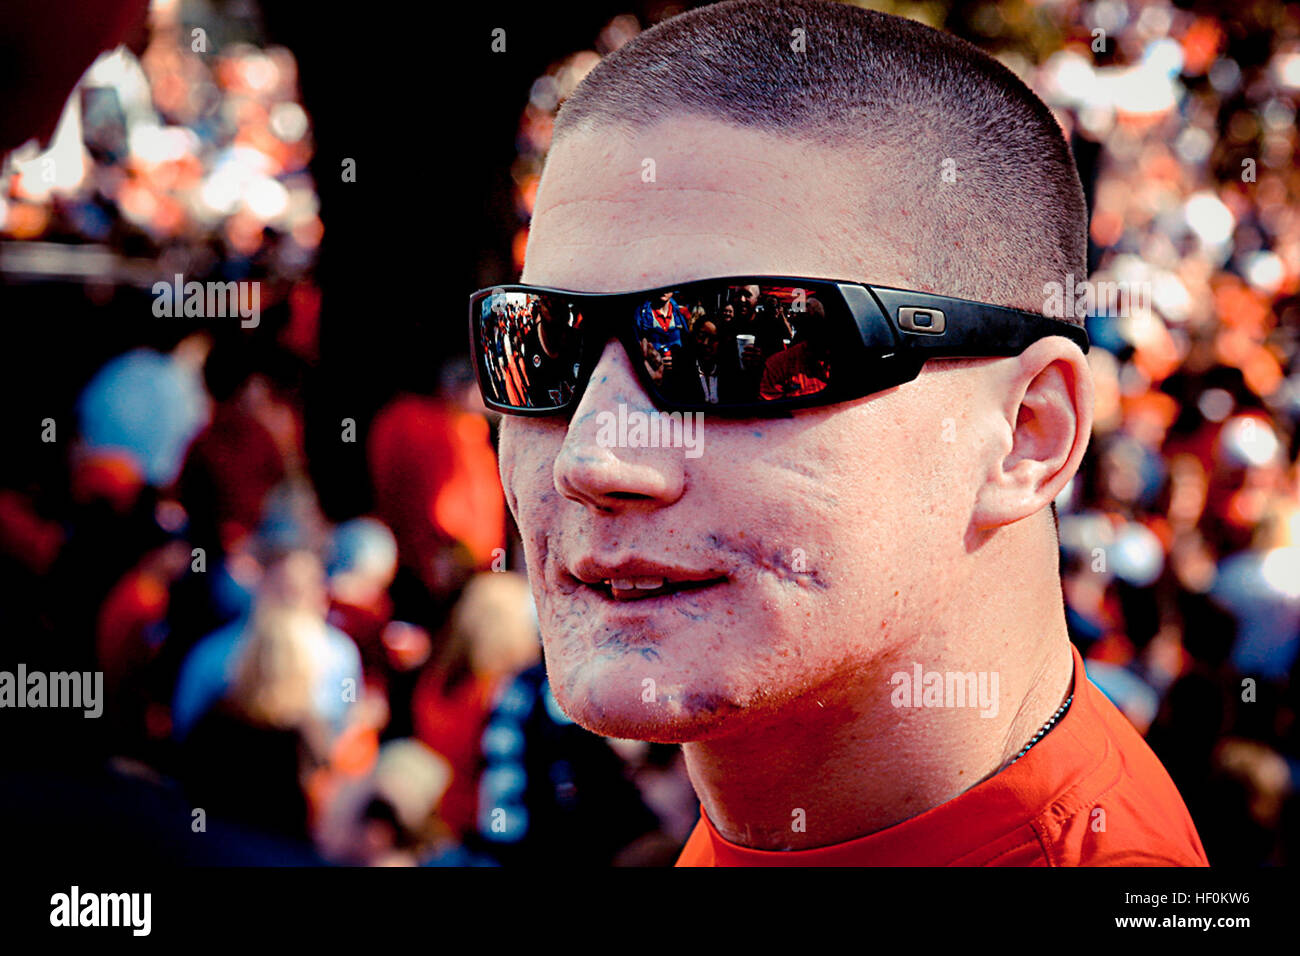 Lance Cpl. Kyle Carpenter, a 22 year-old Marine and wounded warrior from Walter Reed National Military Medical Center, - Stock Image